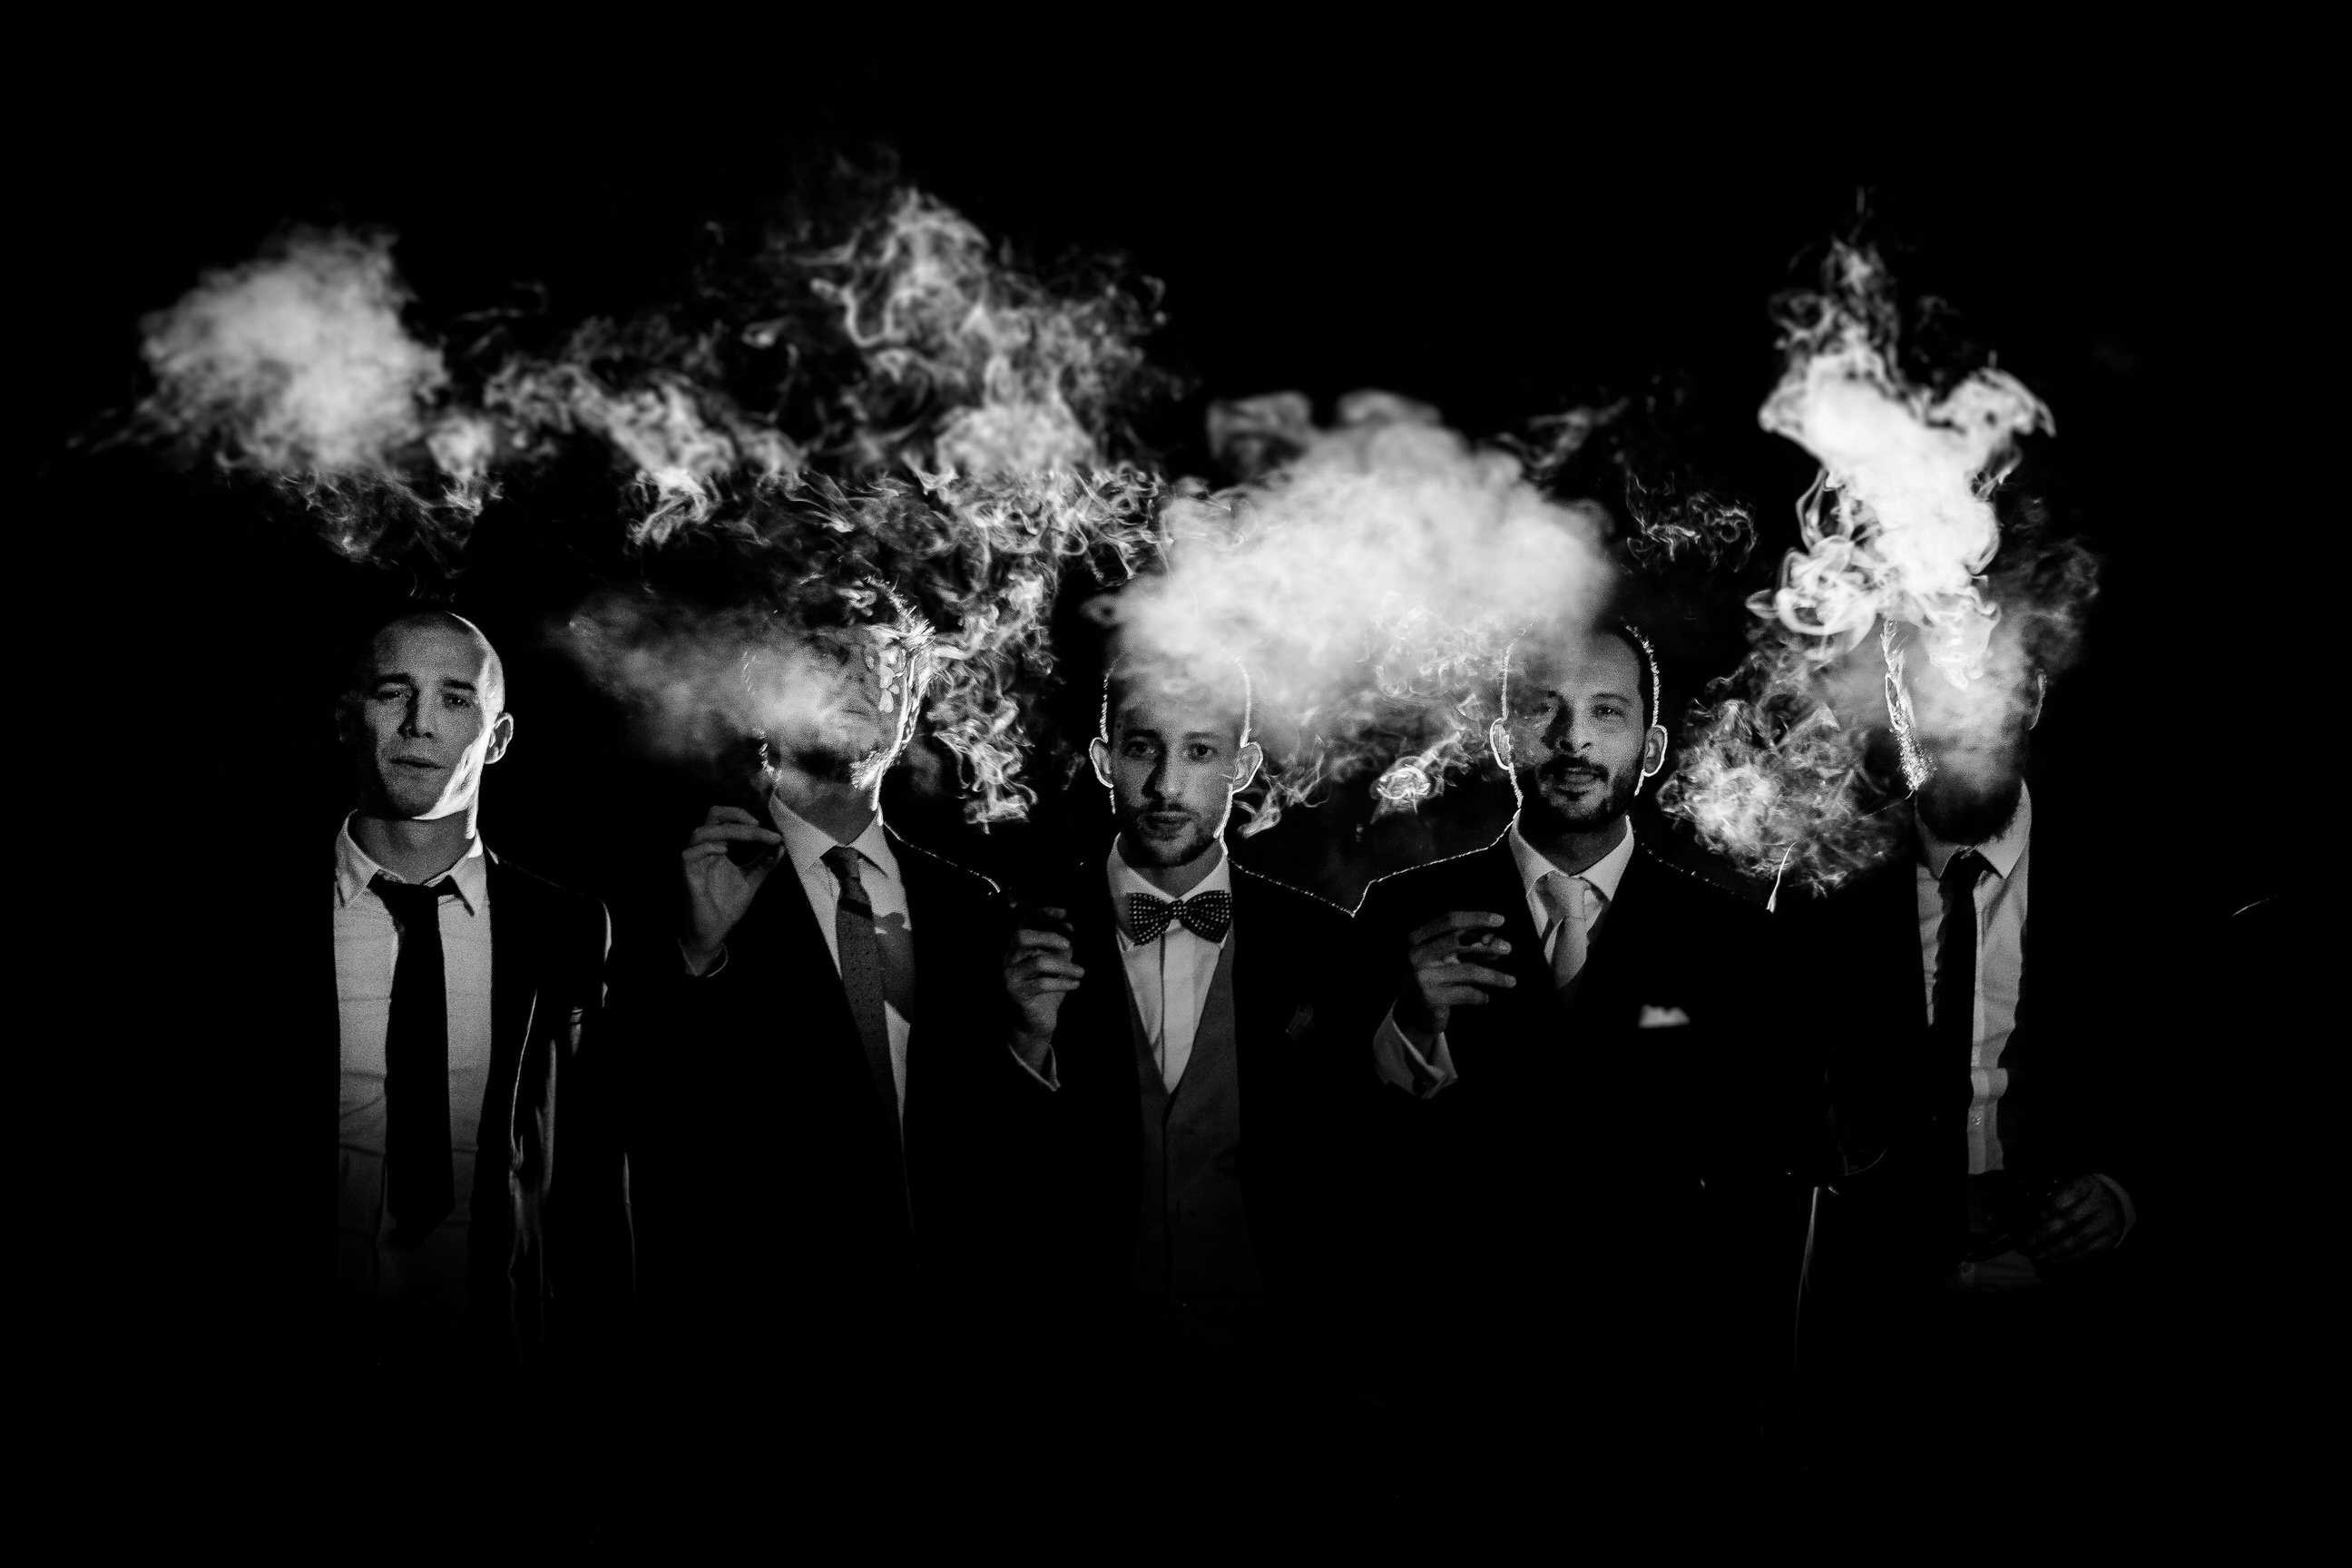 Fine art portrait in black and white of a groom and his groomsmen smoking and surrounded by clouds of smoke against an all black background shot by luxury wedding photographer Francesco Bognin